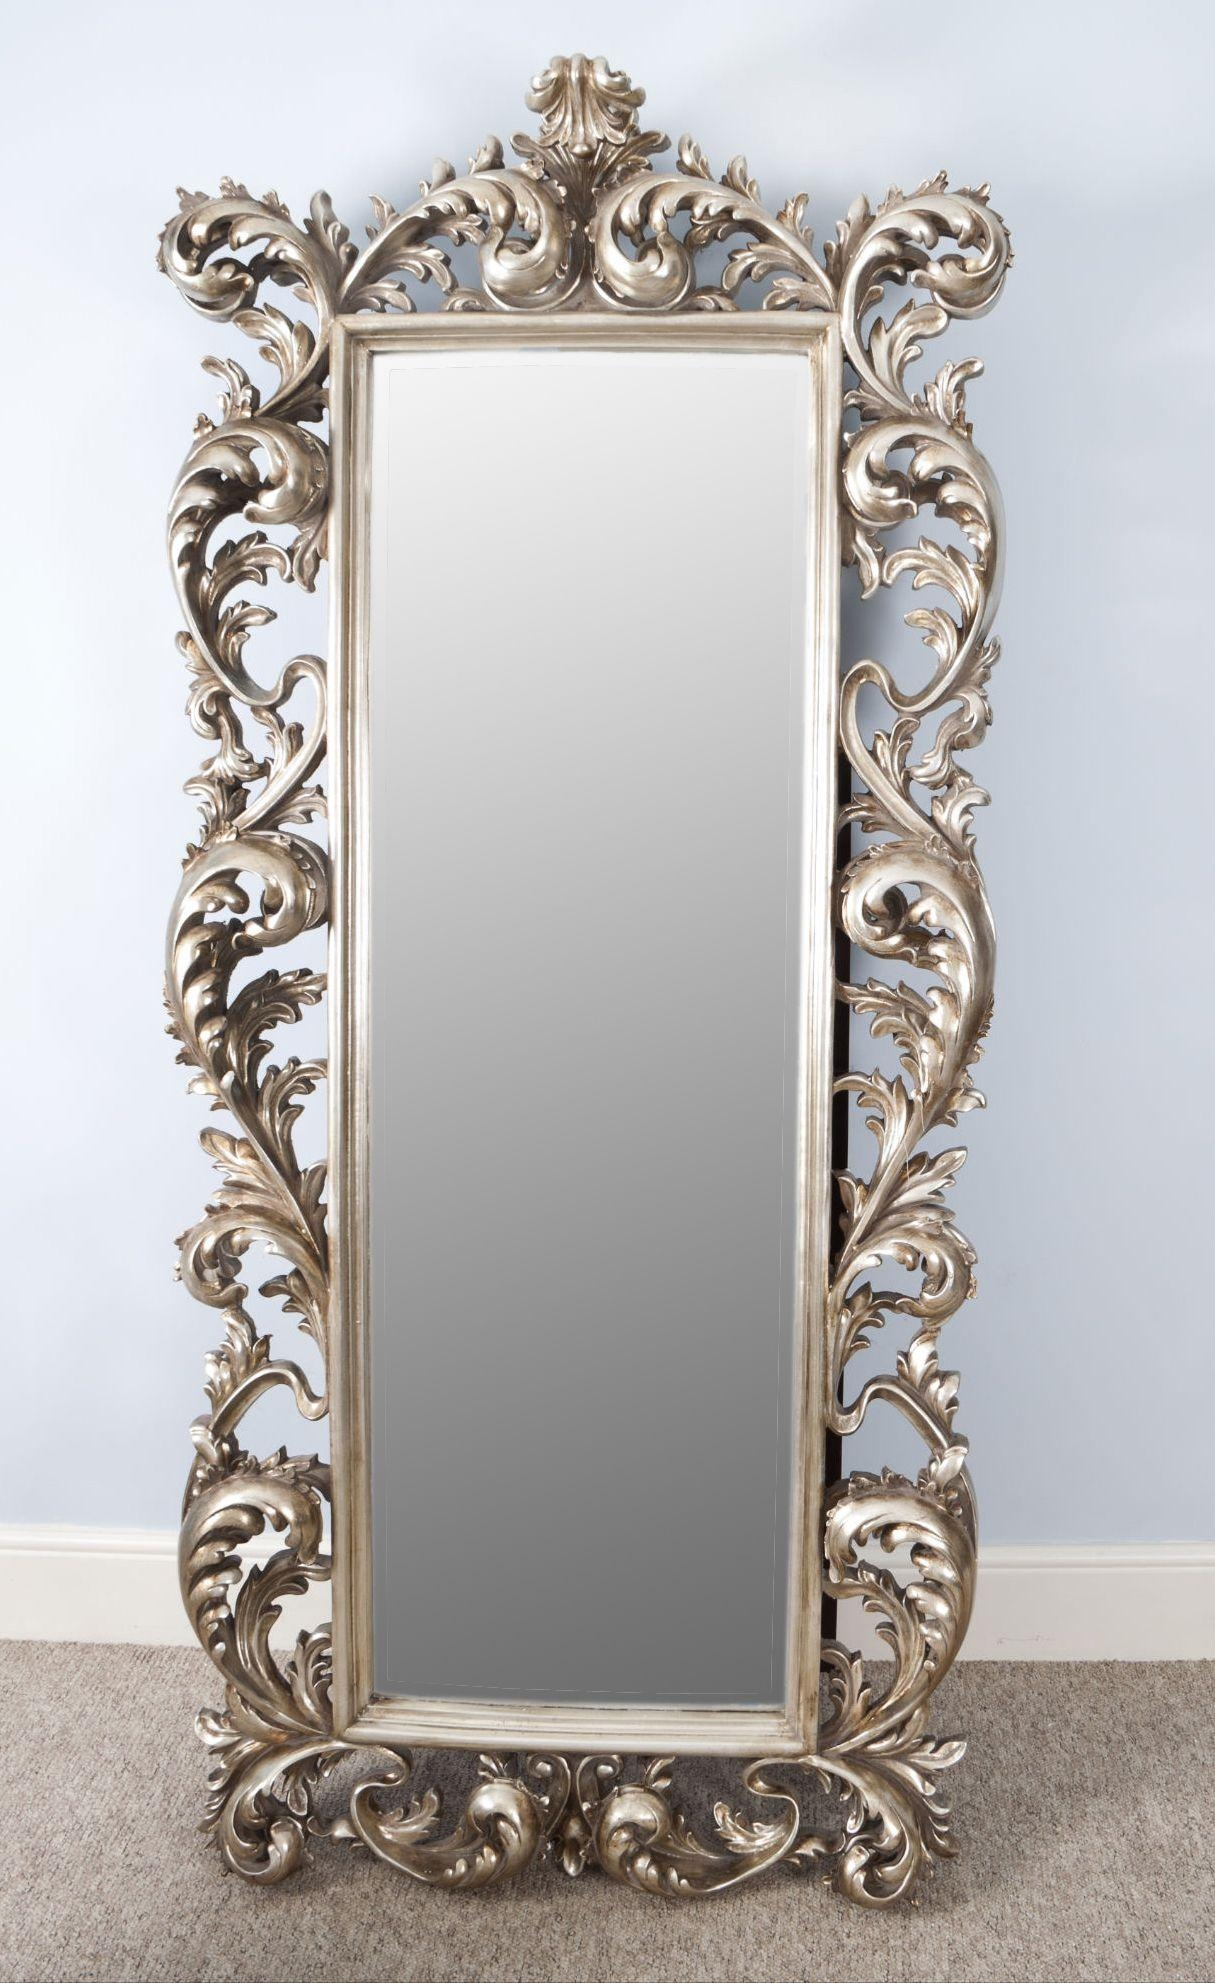 Antique Mirror Wall Sconce Antique Wall Shelf Mirror – Classic Pertaining To Antique Full Length Wall Mirror (View 2 of 20)